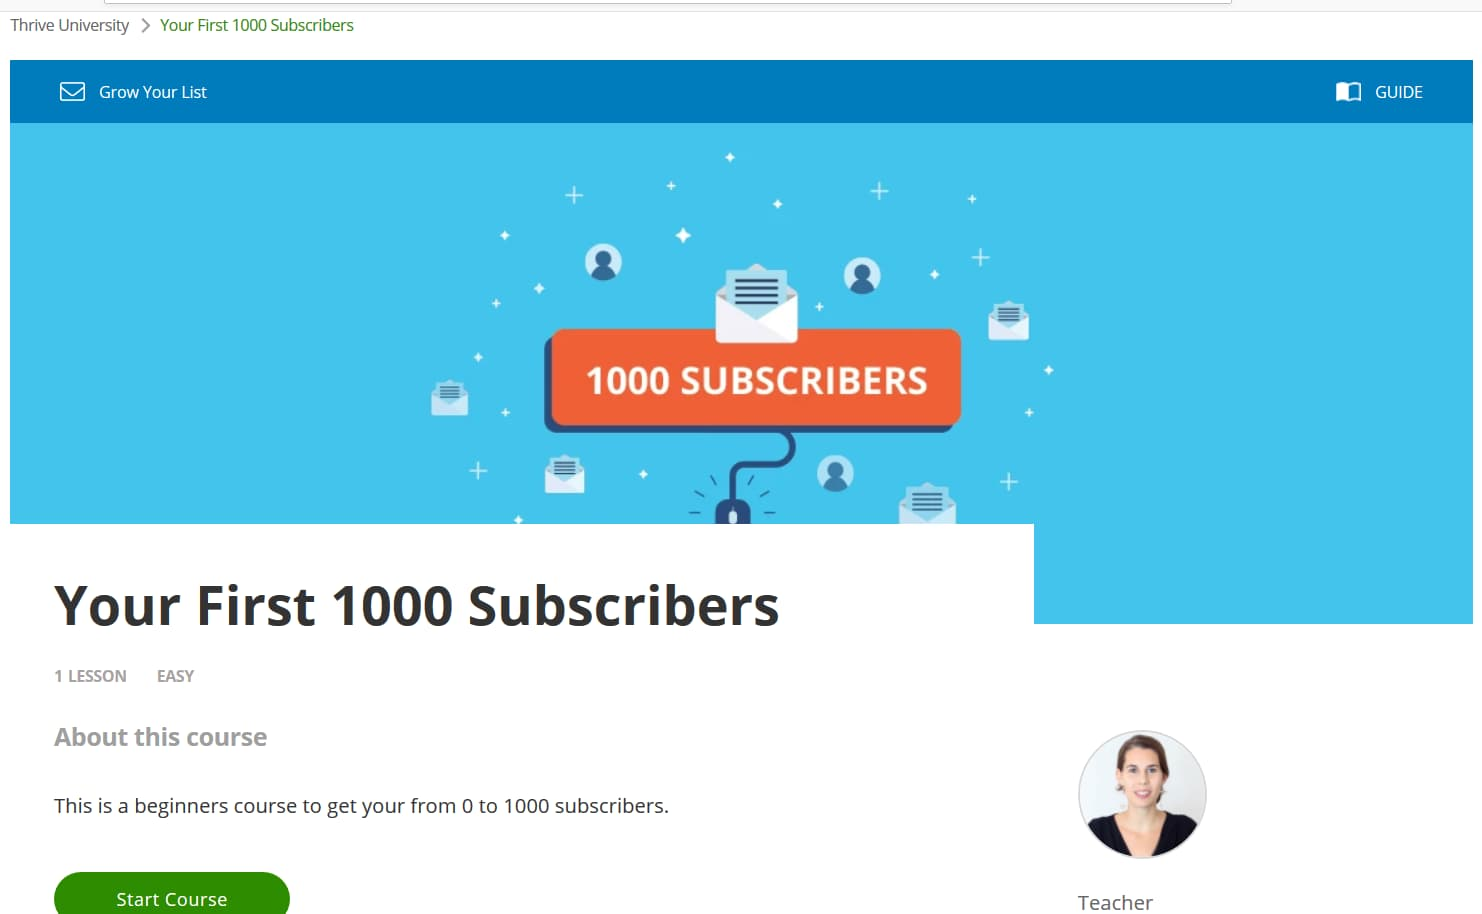 Your First 1000 Subscribers course